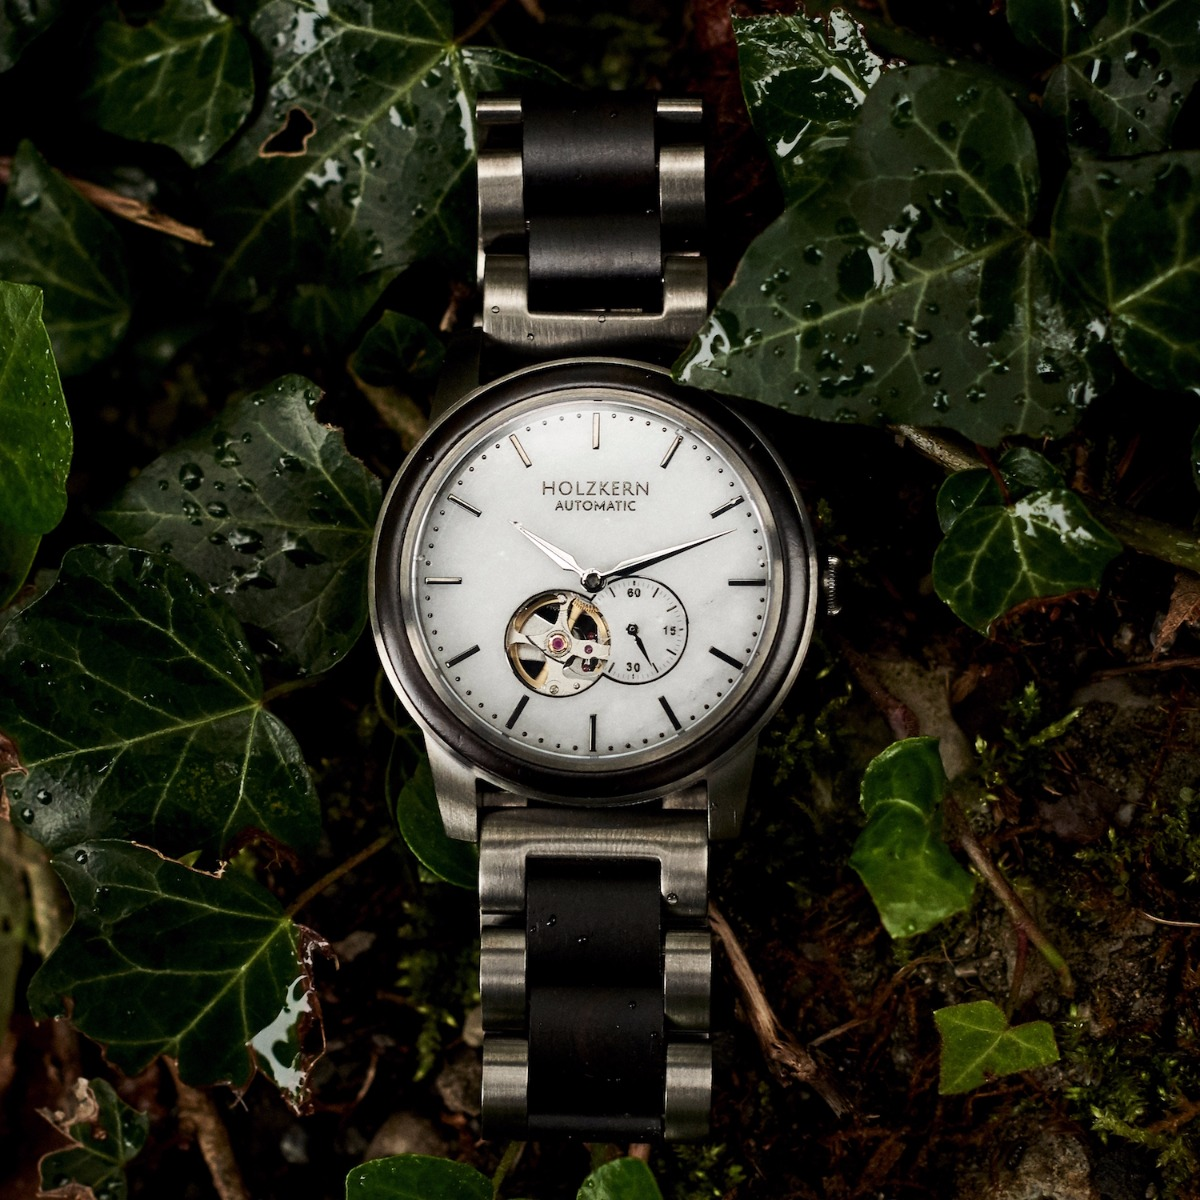 Mens wood watch Manhattan in between ivy leaves